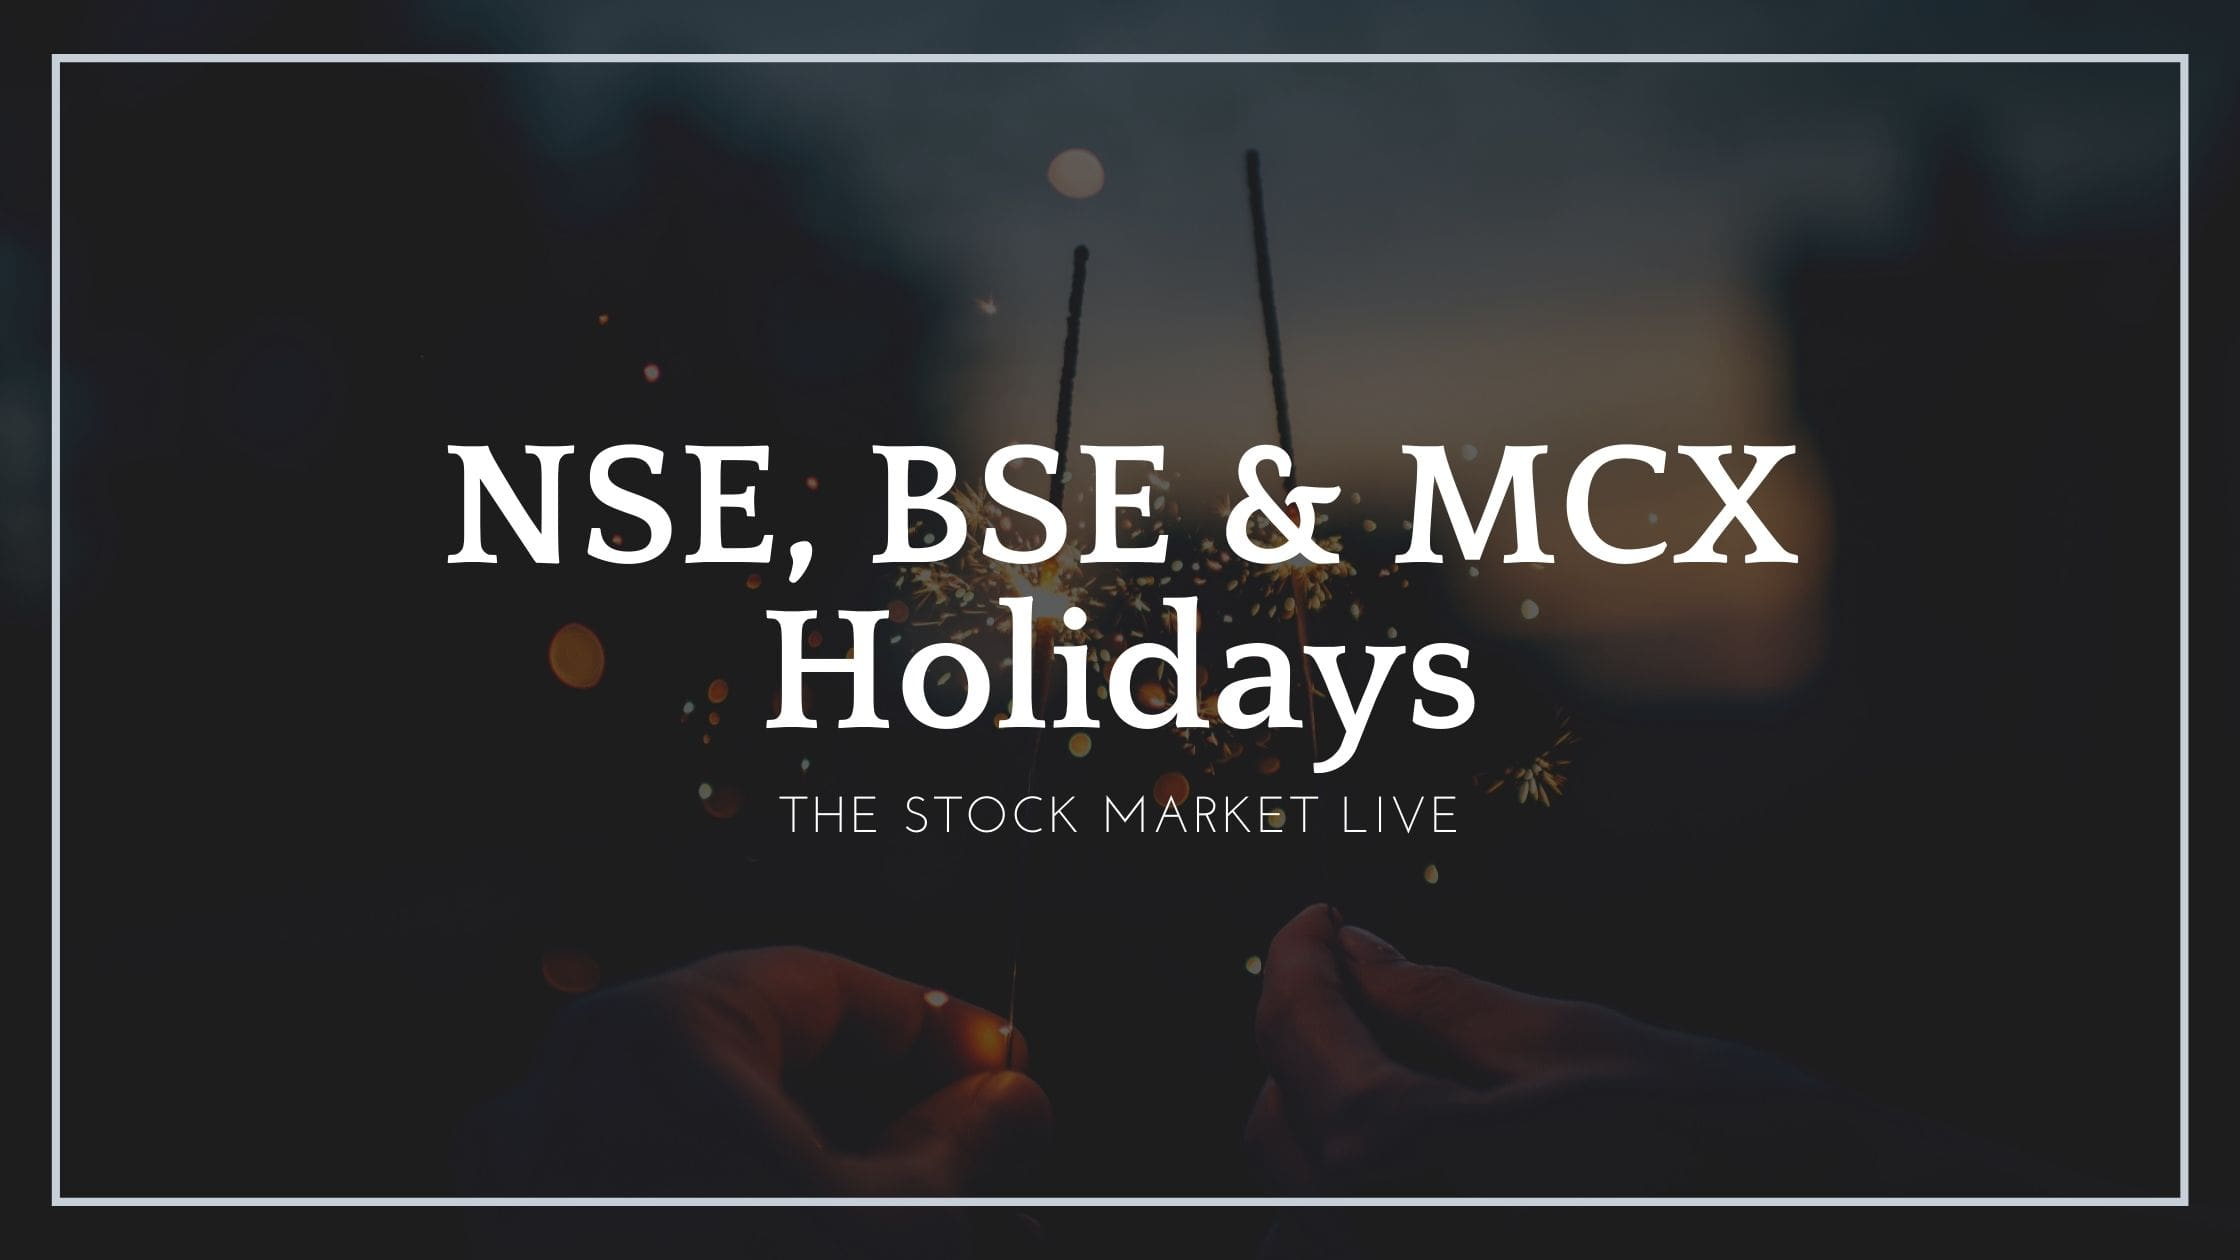 NSE BSE & MCX Holidays